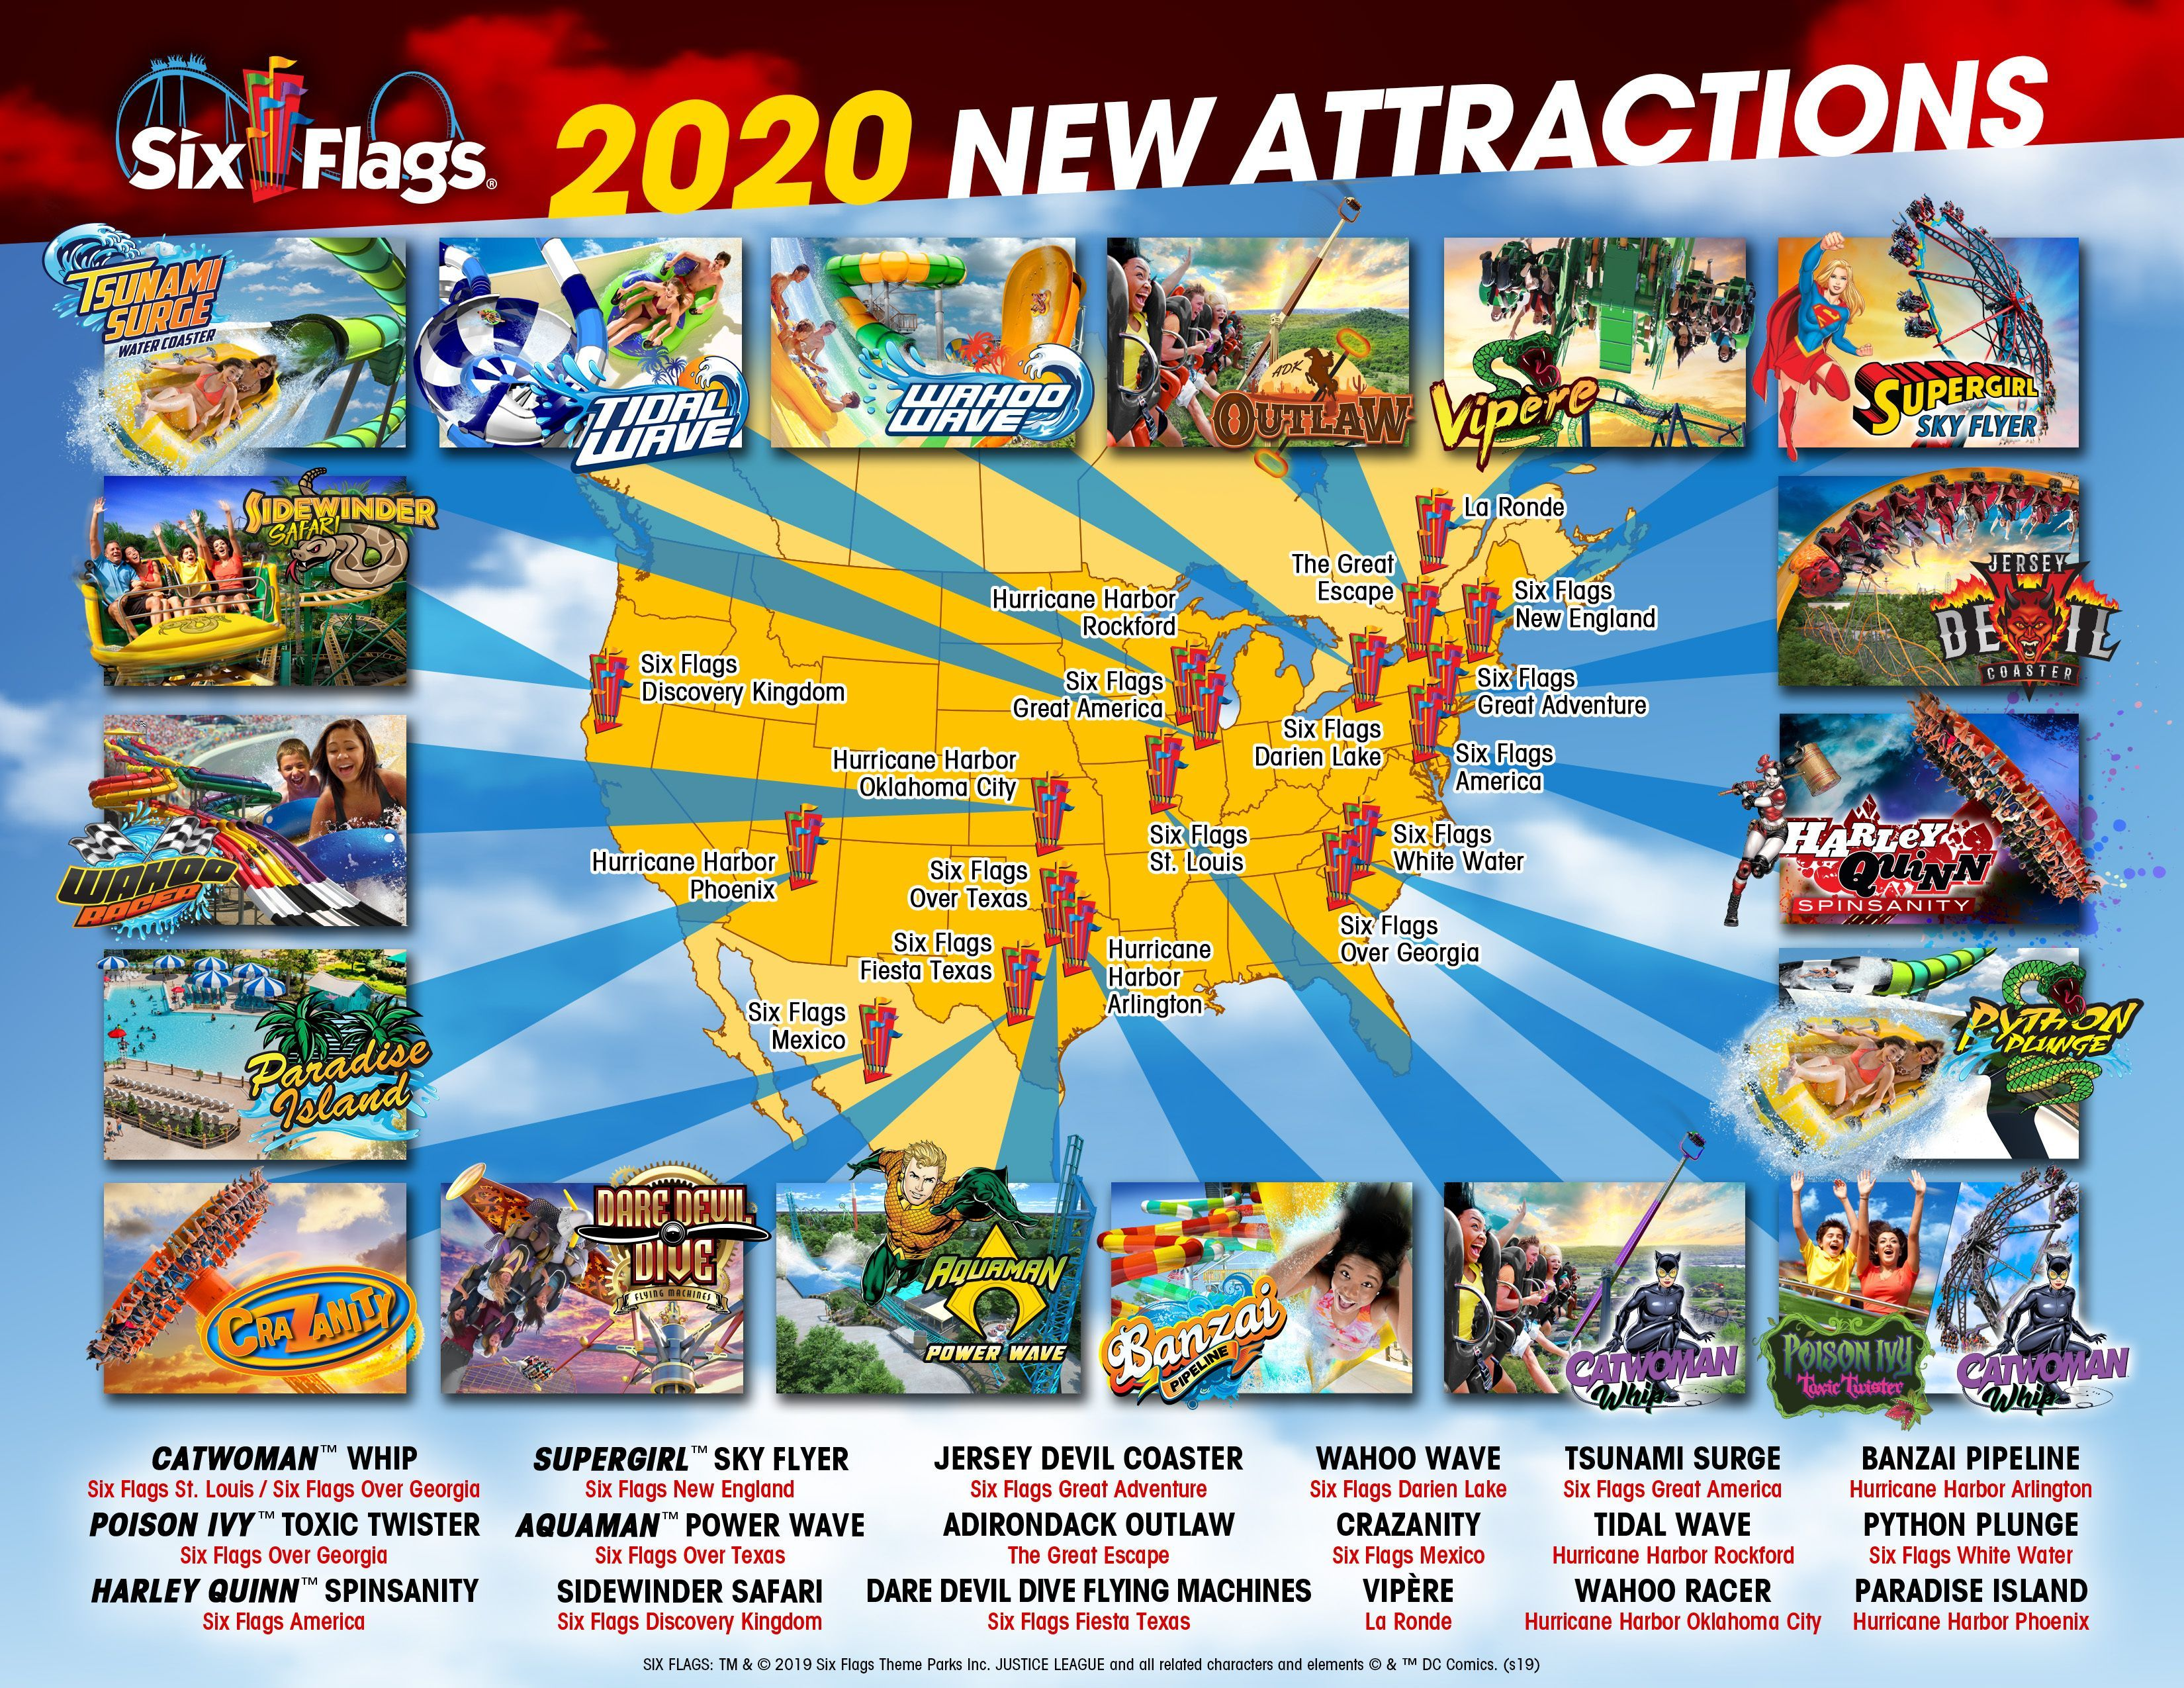 Six Flags Parks Announces New Coasters Waterslides And More Coming In 2020 Six Flags Waterslides Darien Lake